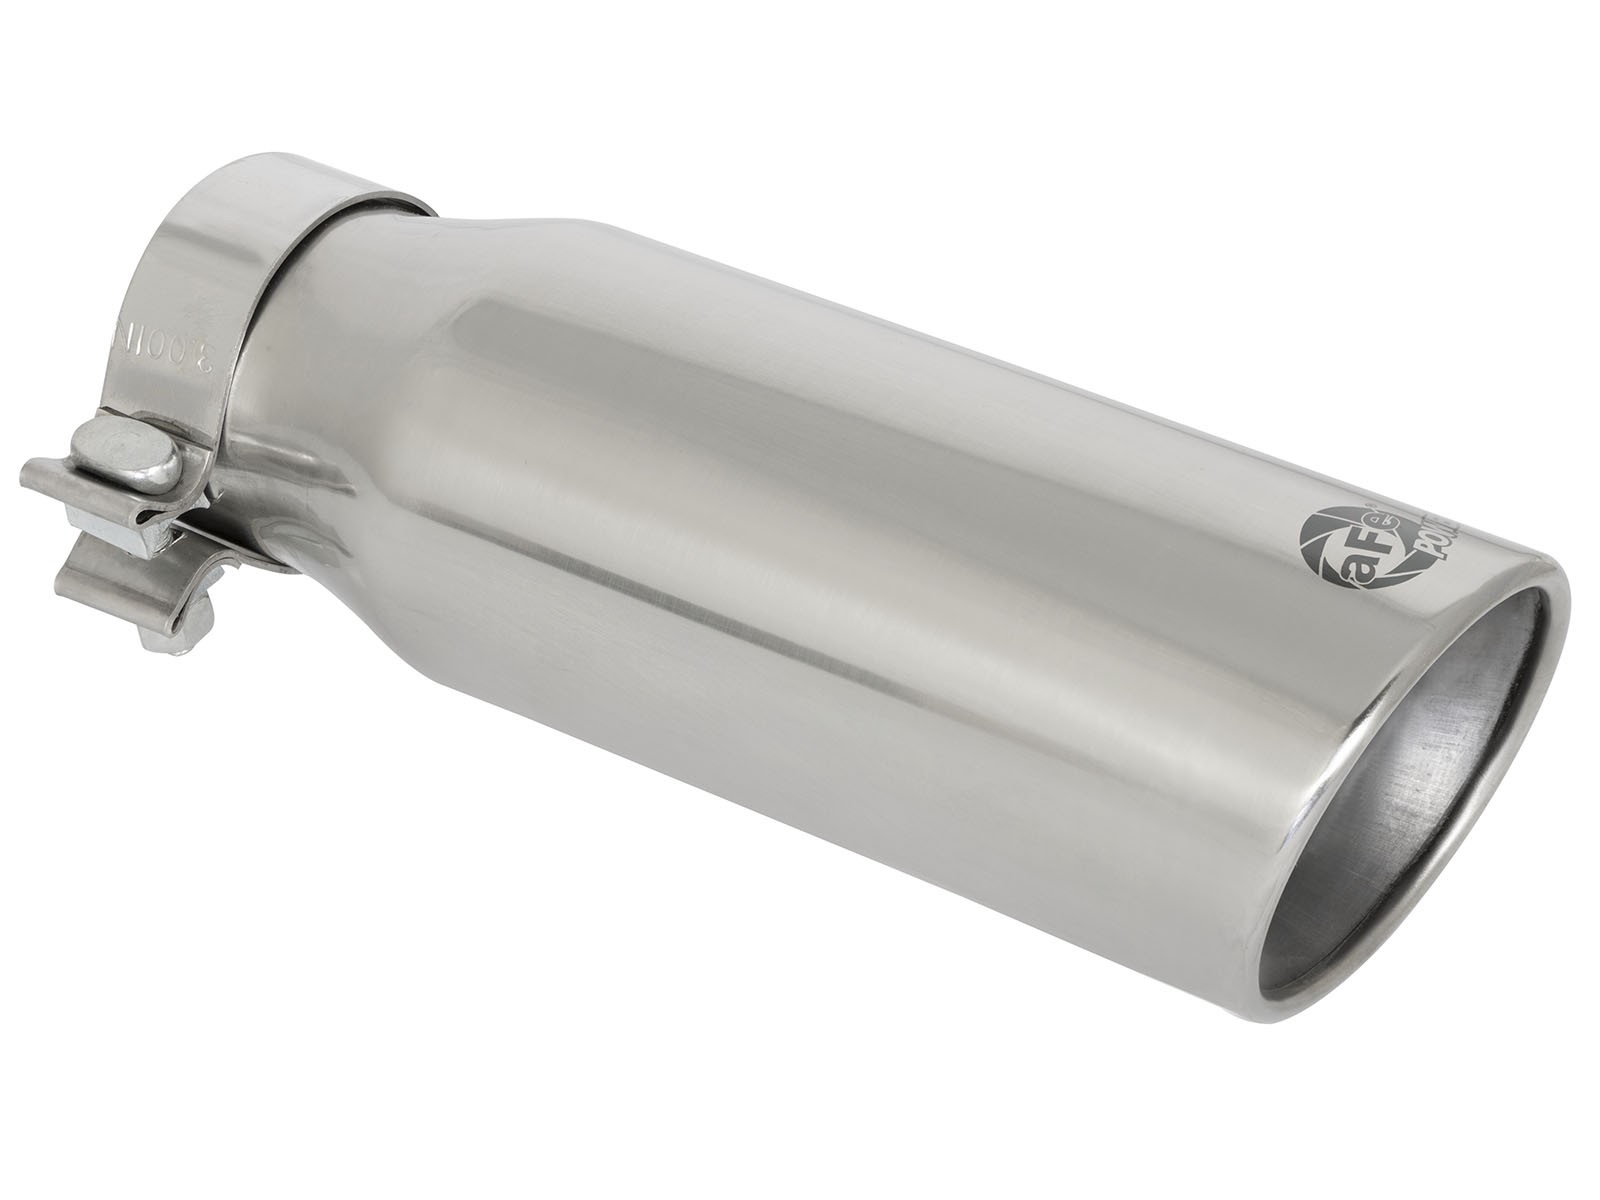 "aFe POWER 49T30404-P121 MACH Force-Xp 4"" 304 Stainless Steel Exhaust Tip"